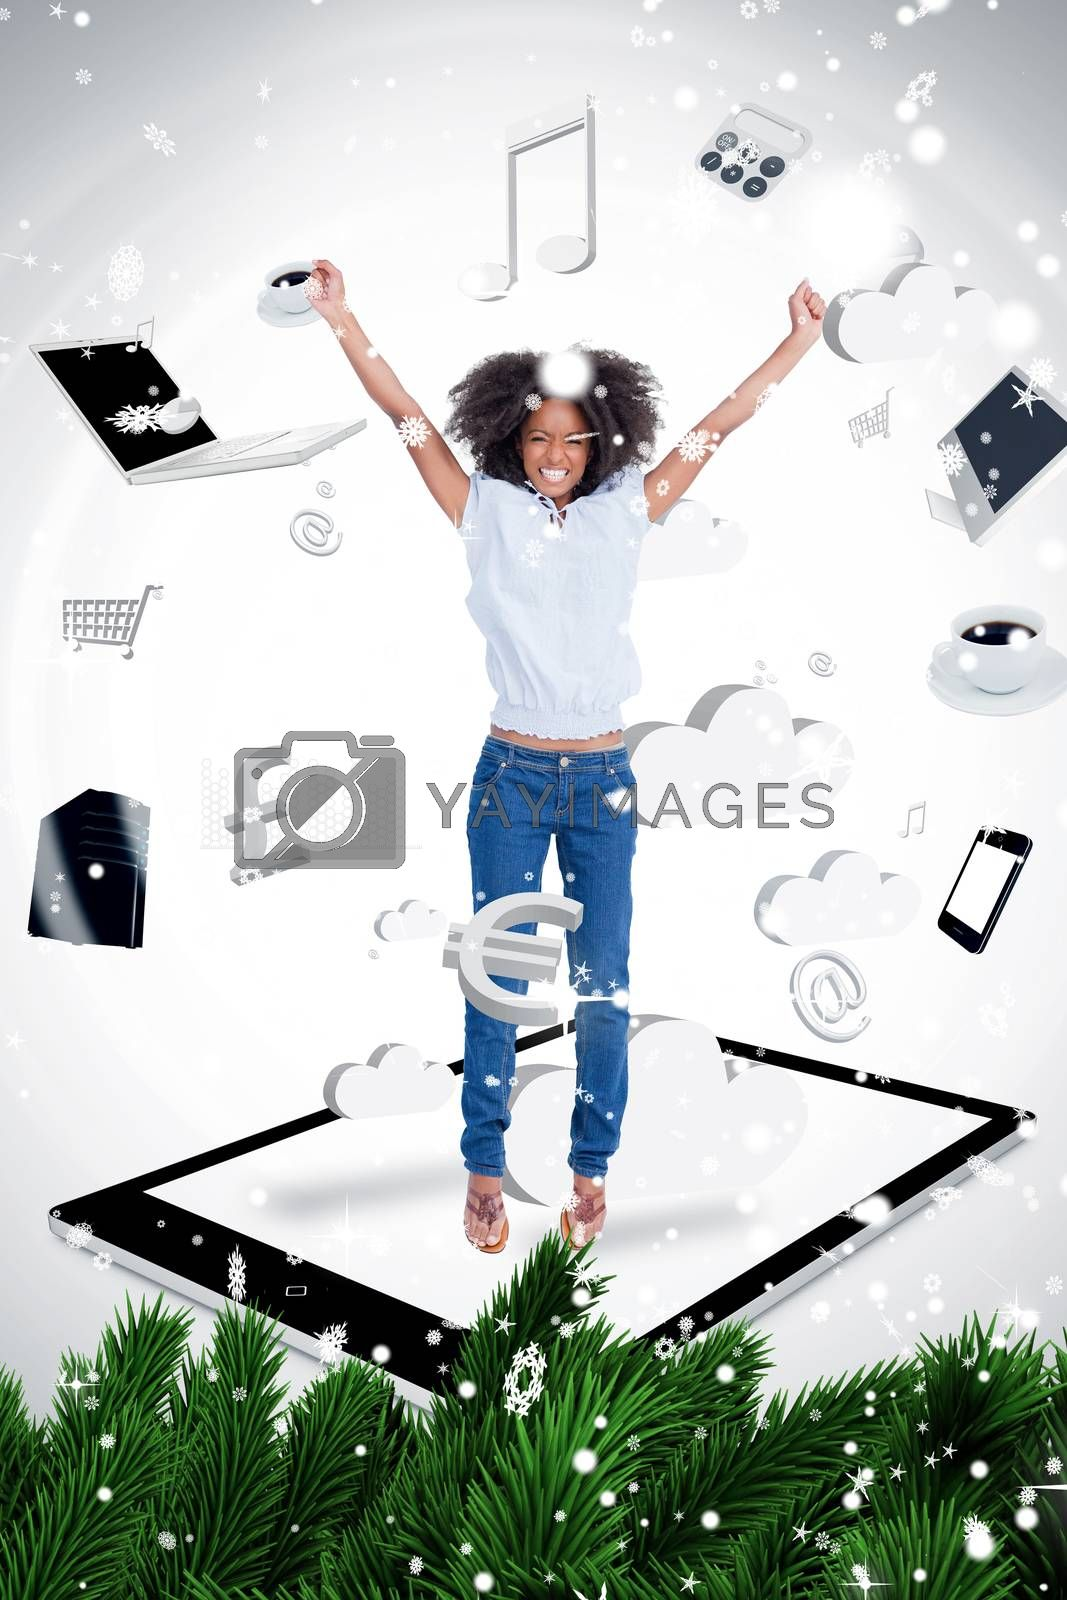 Composite image of a Cheerful woman jumping on a tablet pc against snow falling